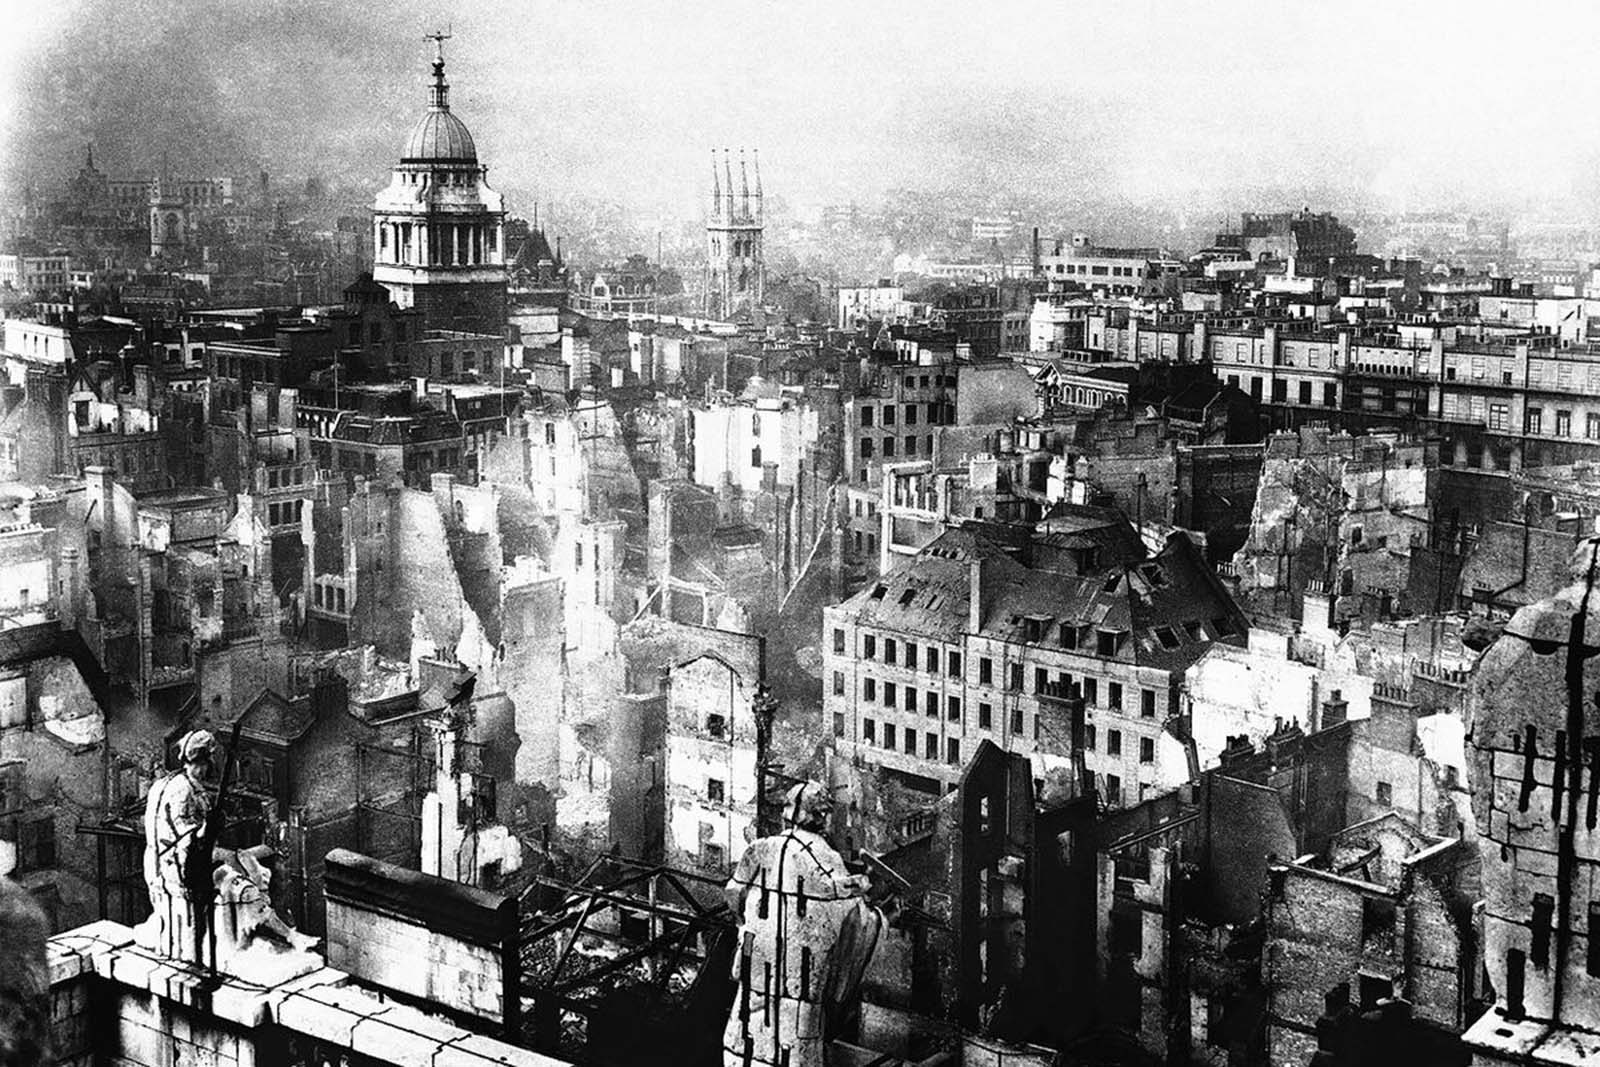 A view from the roof of St. Paul's Cathedral in London in January, 1941, showing how the famous building was ringed by fires on the night of the great Blitz. Devastated buildings are seen on every hand, with the tower of the Old Bailey, surmounted by its statue of Justice, still standing to the upper left.